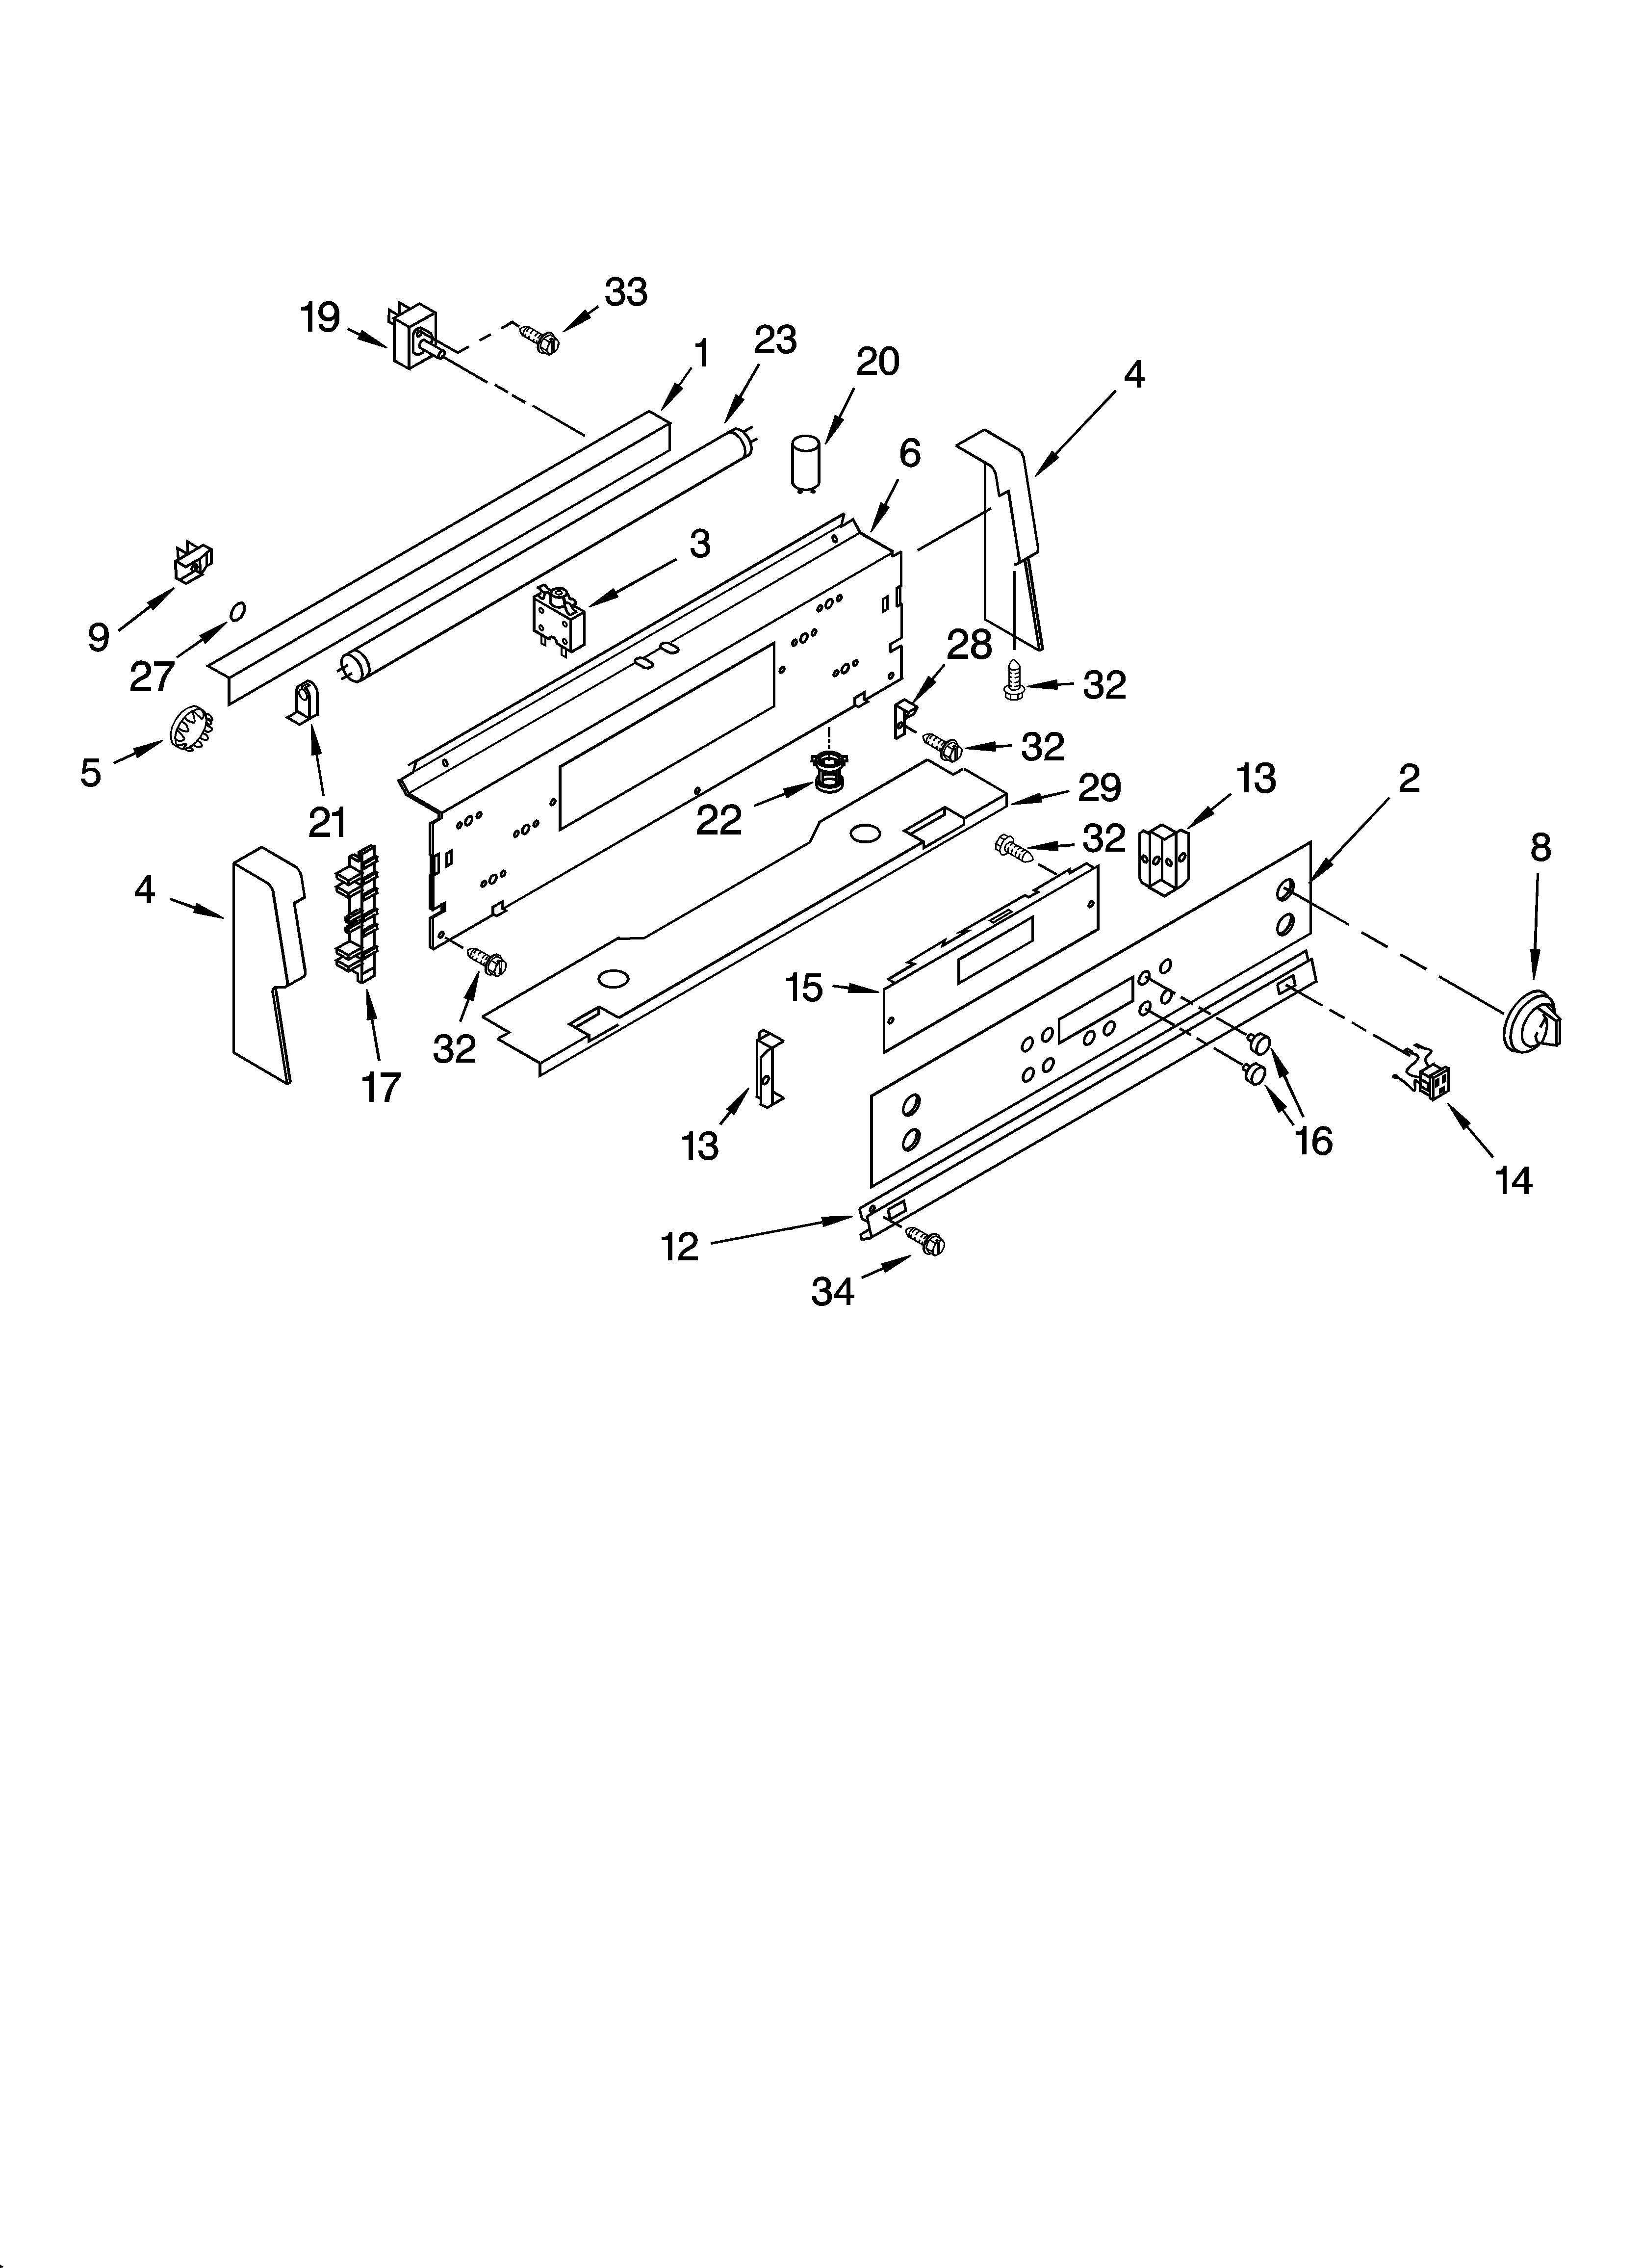 whp54803 free standing - electric control panel parts diagram